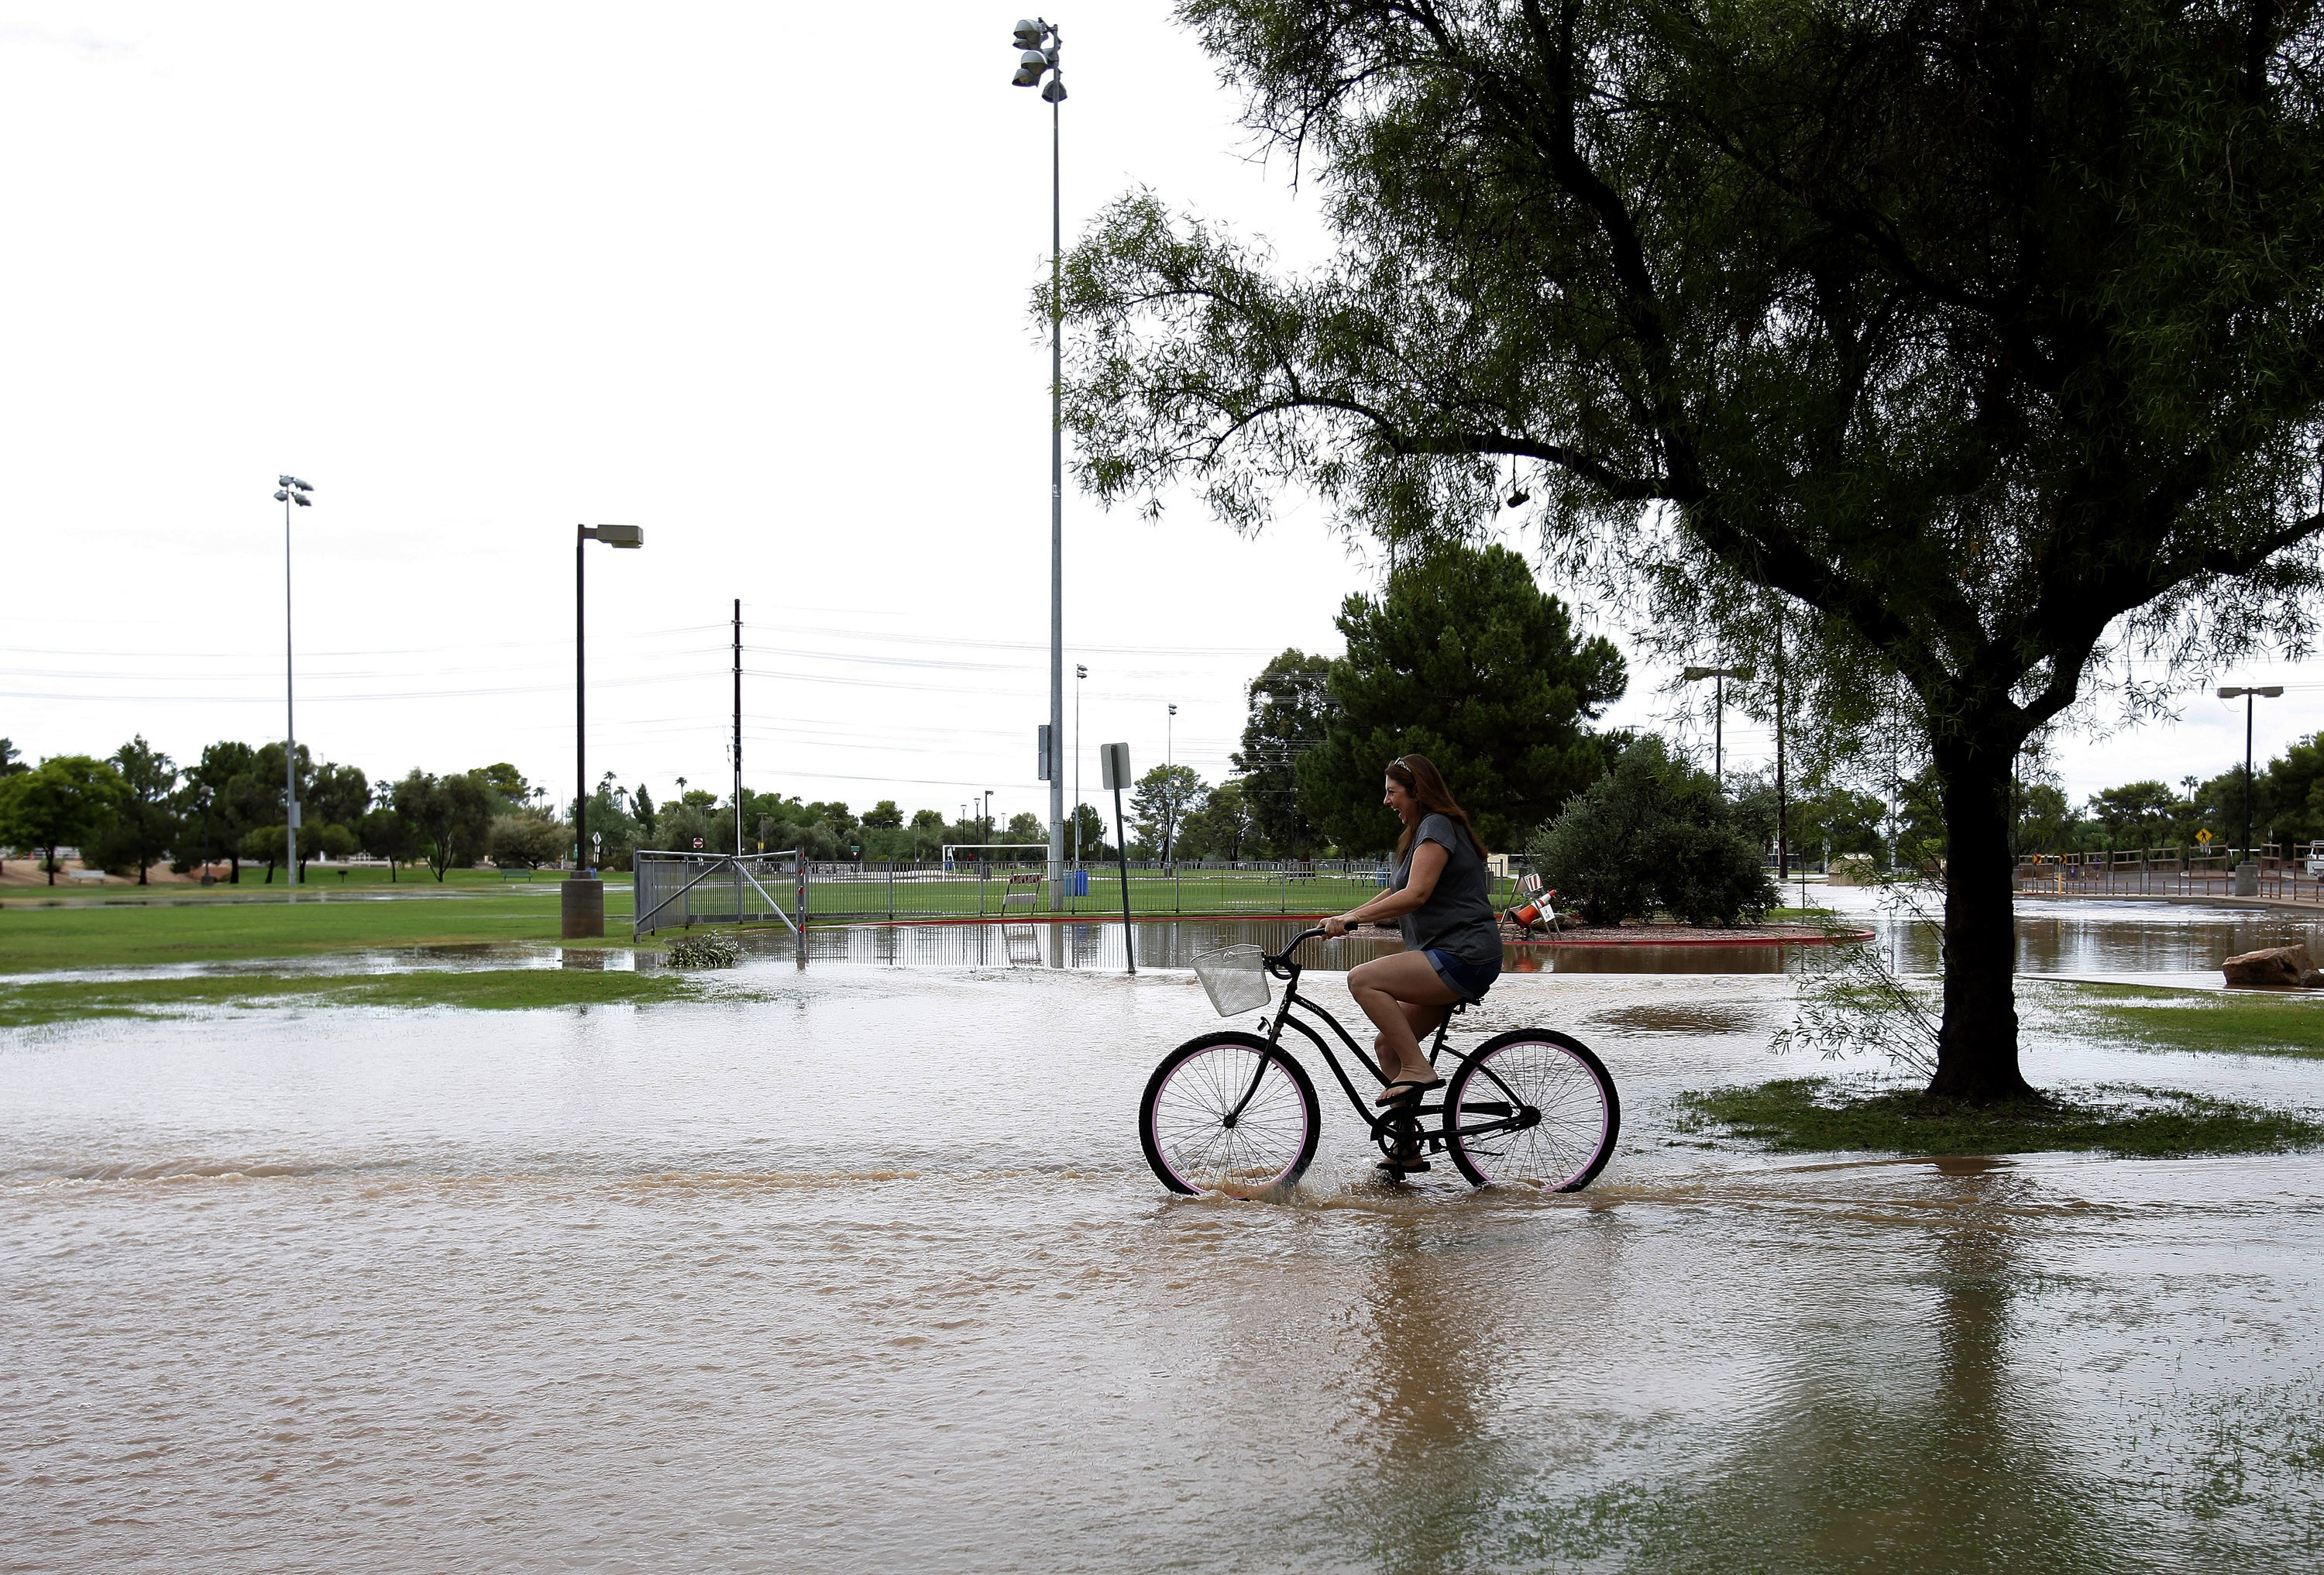 A woman rides her bike through a flooded pathway in Scottsdale, Ariz. on Sept. 8, 2014.